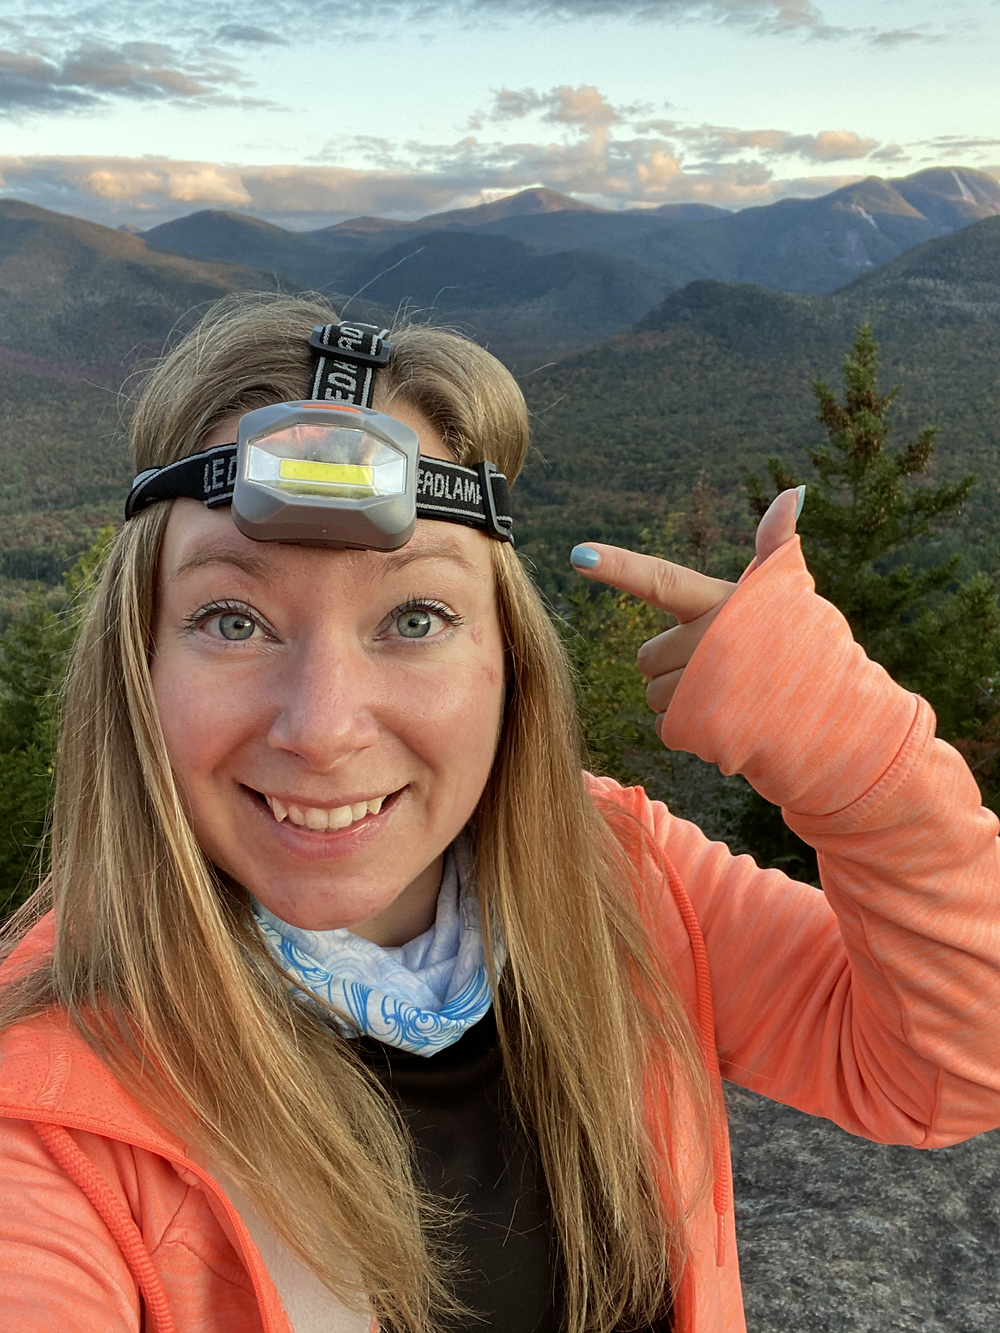 Woman standing on top of mountain pointing to the headlamp on her head.